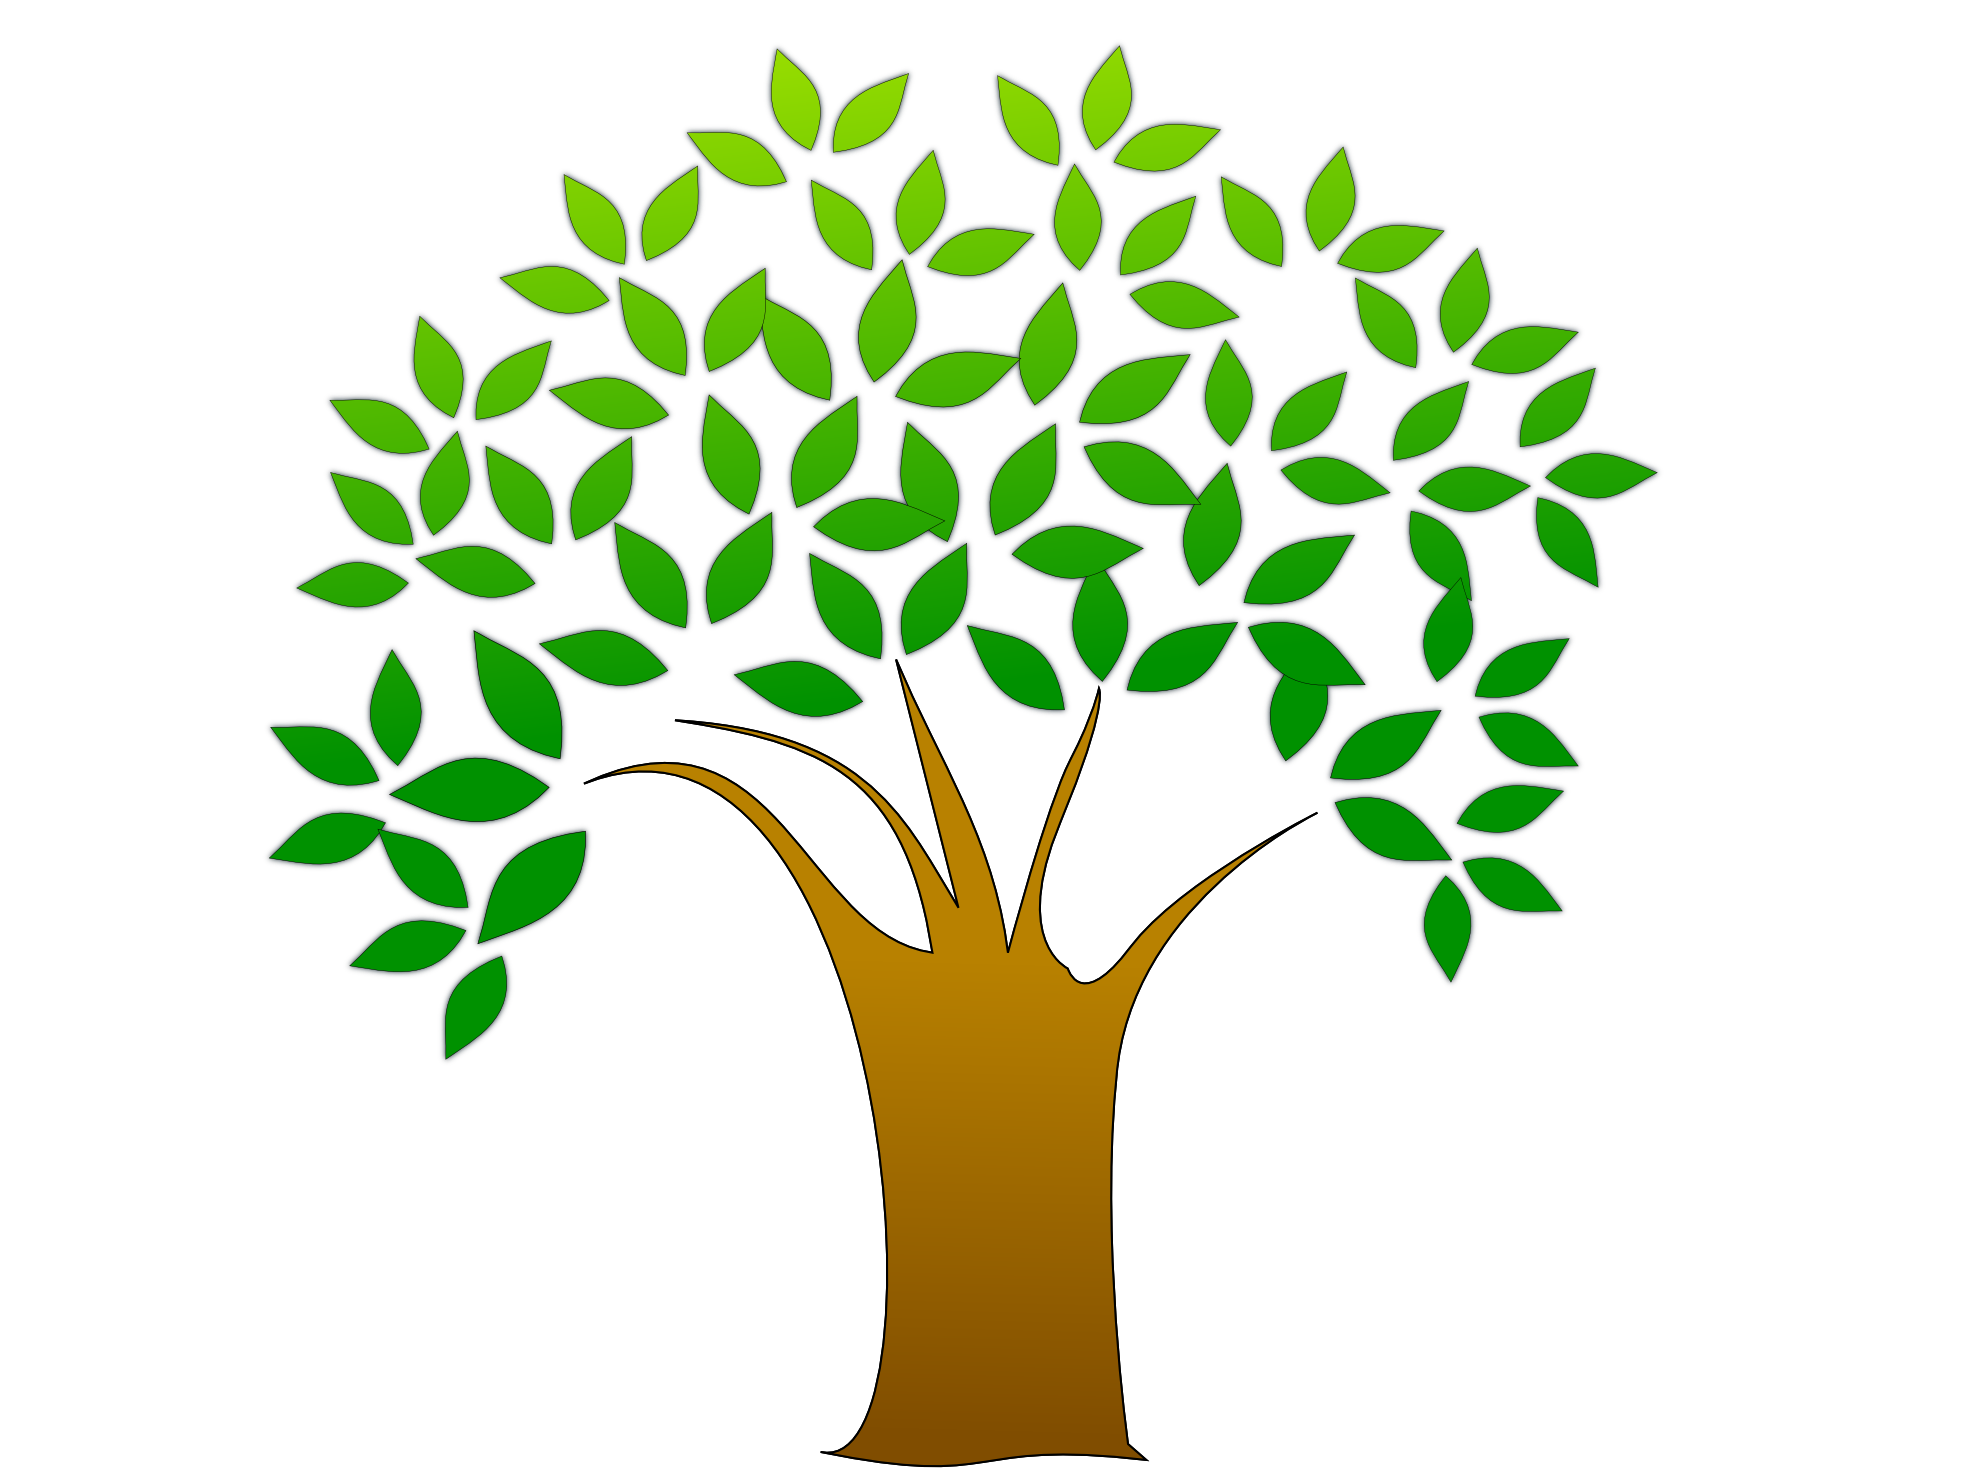 Tree Clipart & Tree Clip Art Images - ClipartALL.com graphic transparent